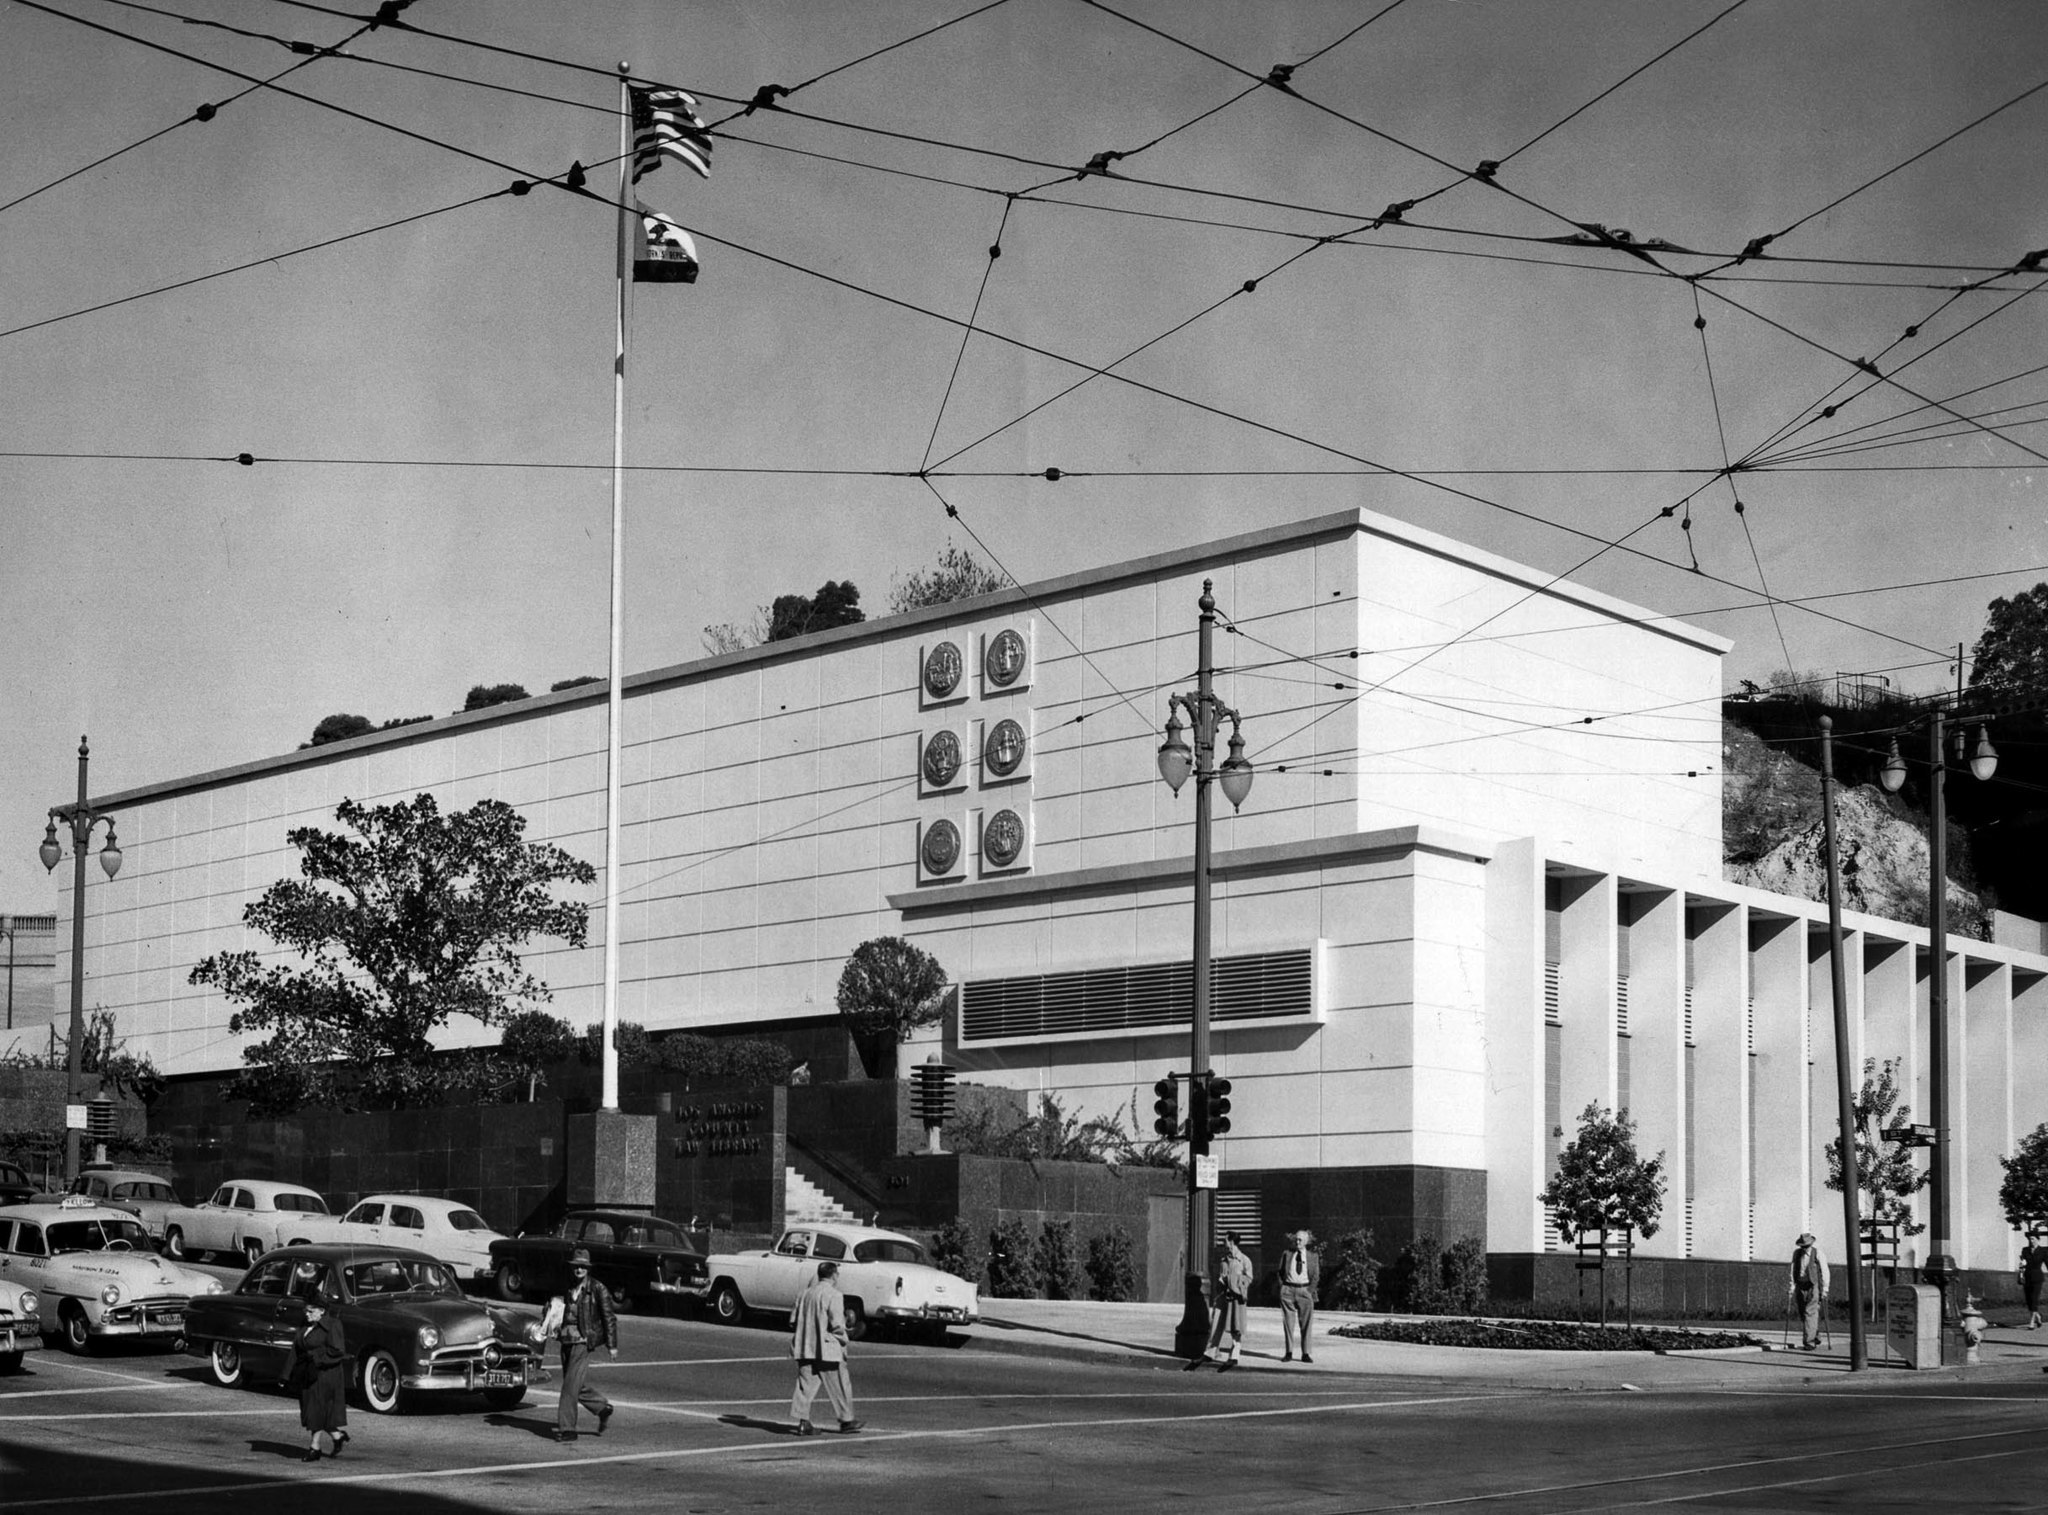 Nov. 16, 1954 photo of Los Angeles County Law Library at corner of 1st St. and Broadway in Downtown